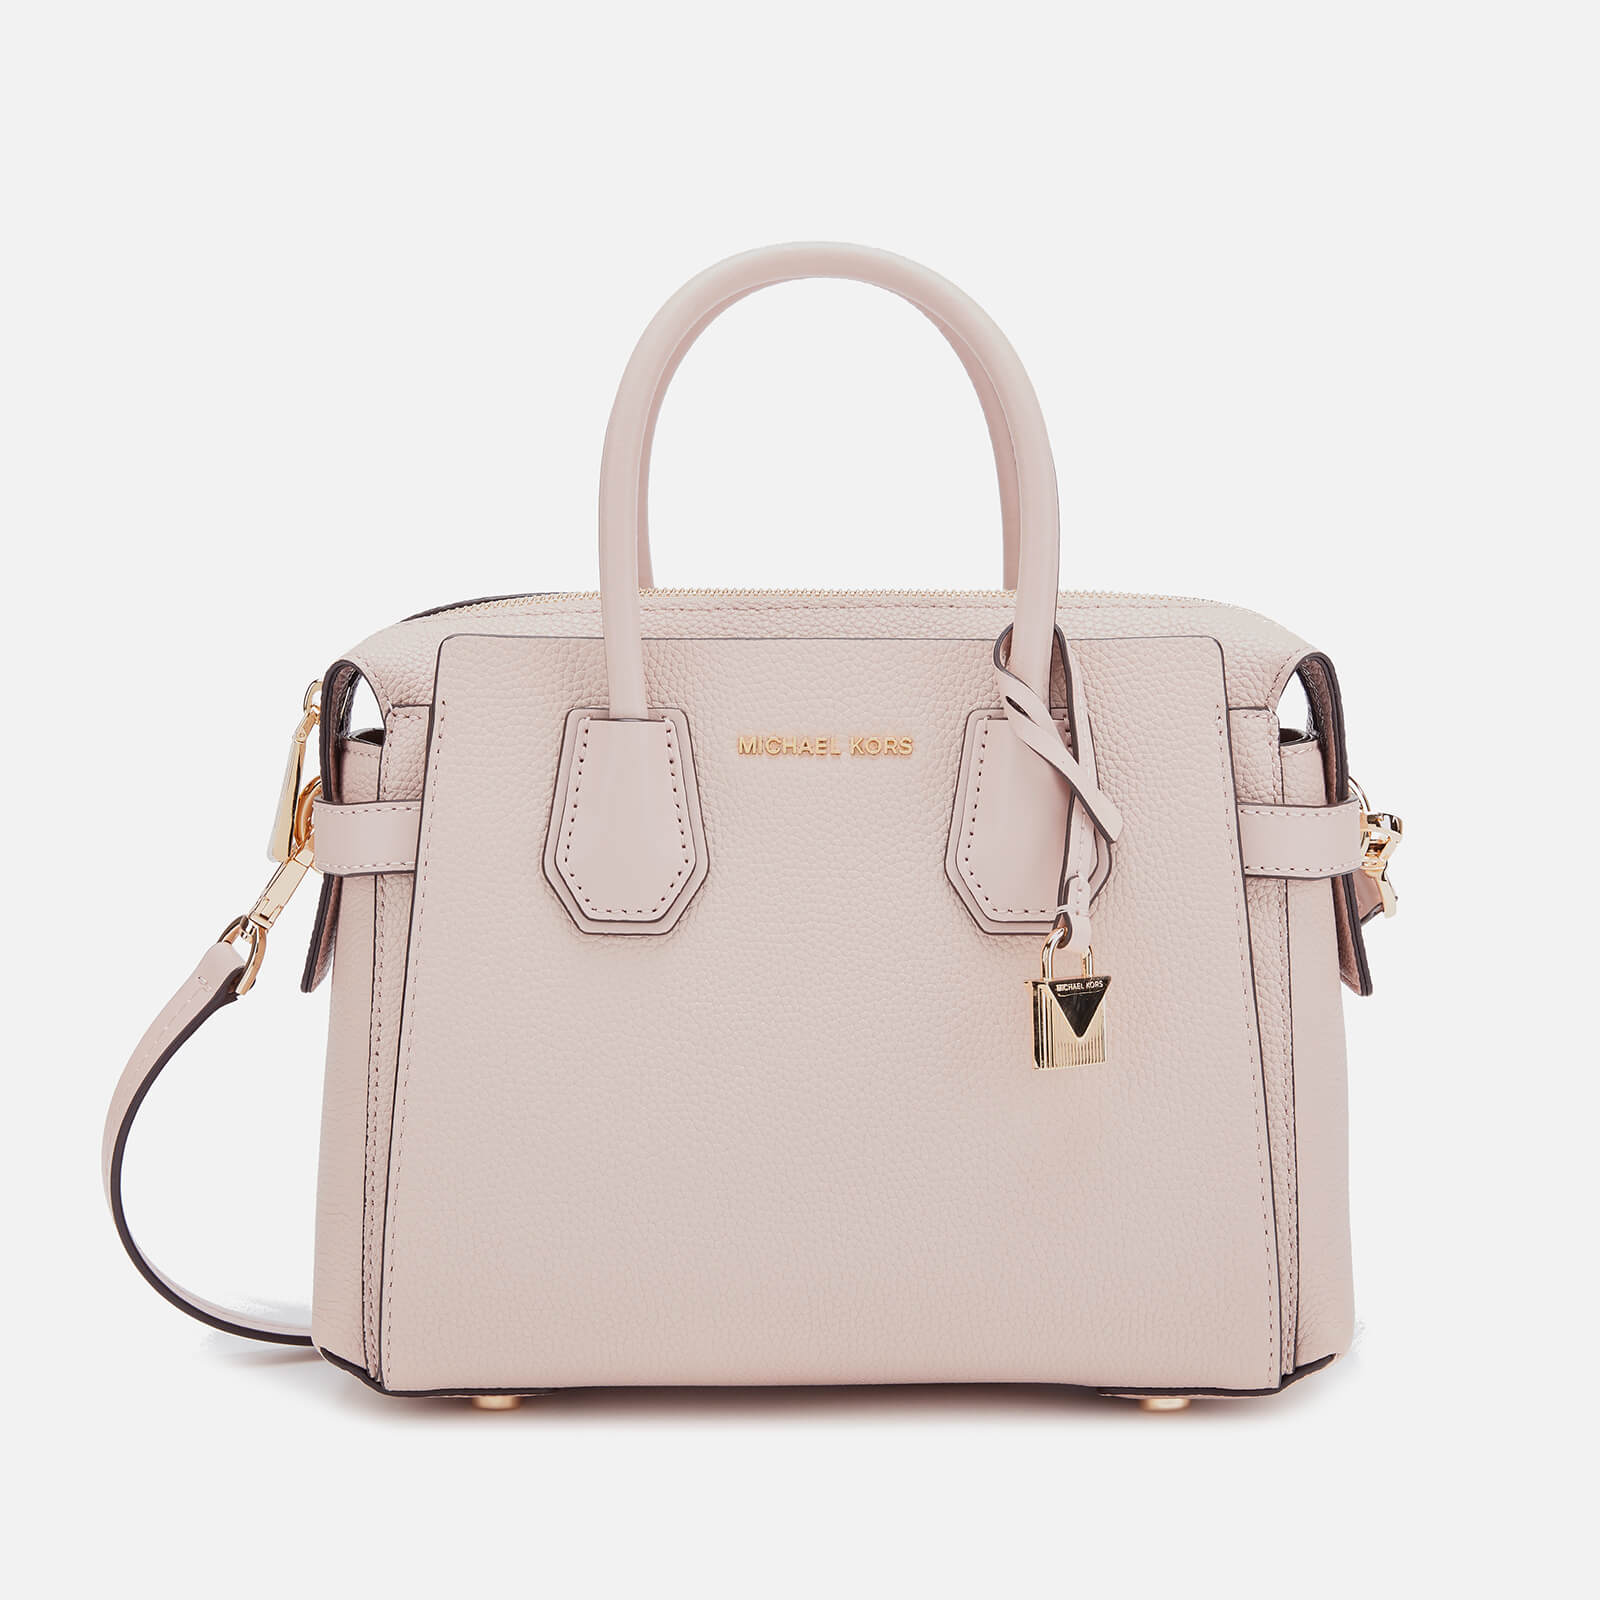 official sale exquisite craftsmanship arrives MICHAEL MICHAEL KORS Women's Mercer Belted Small Satchel Bag - Soft Pink